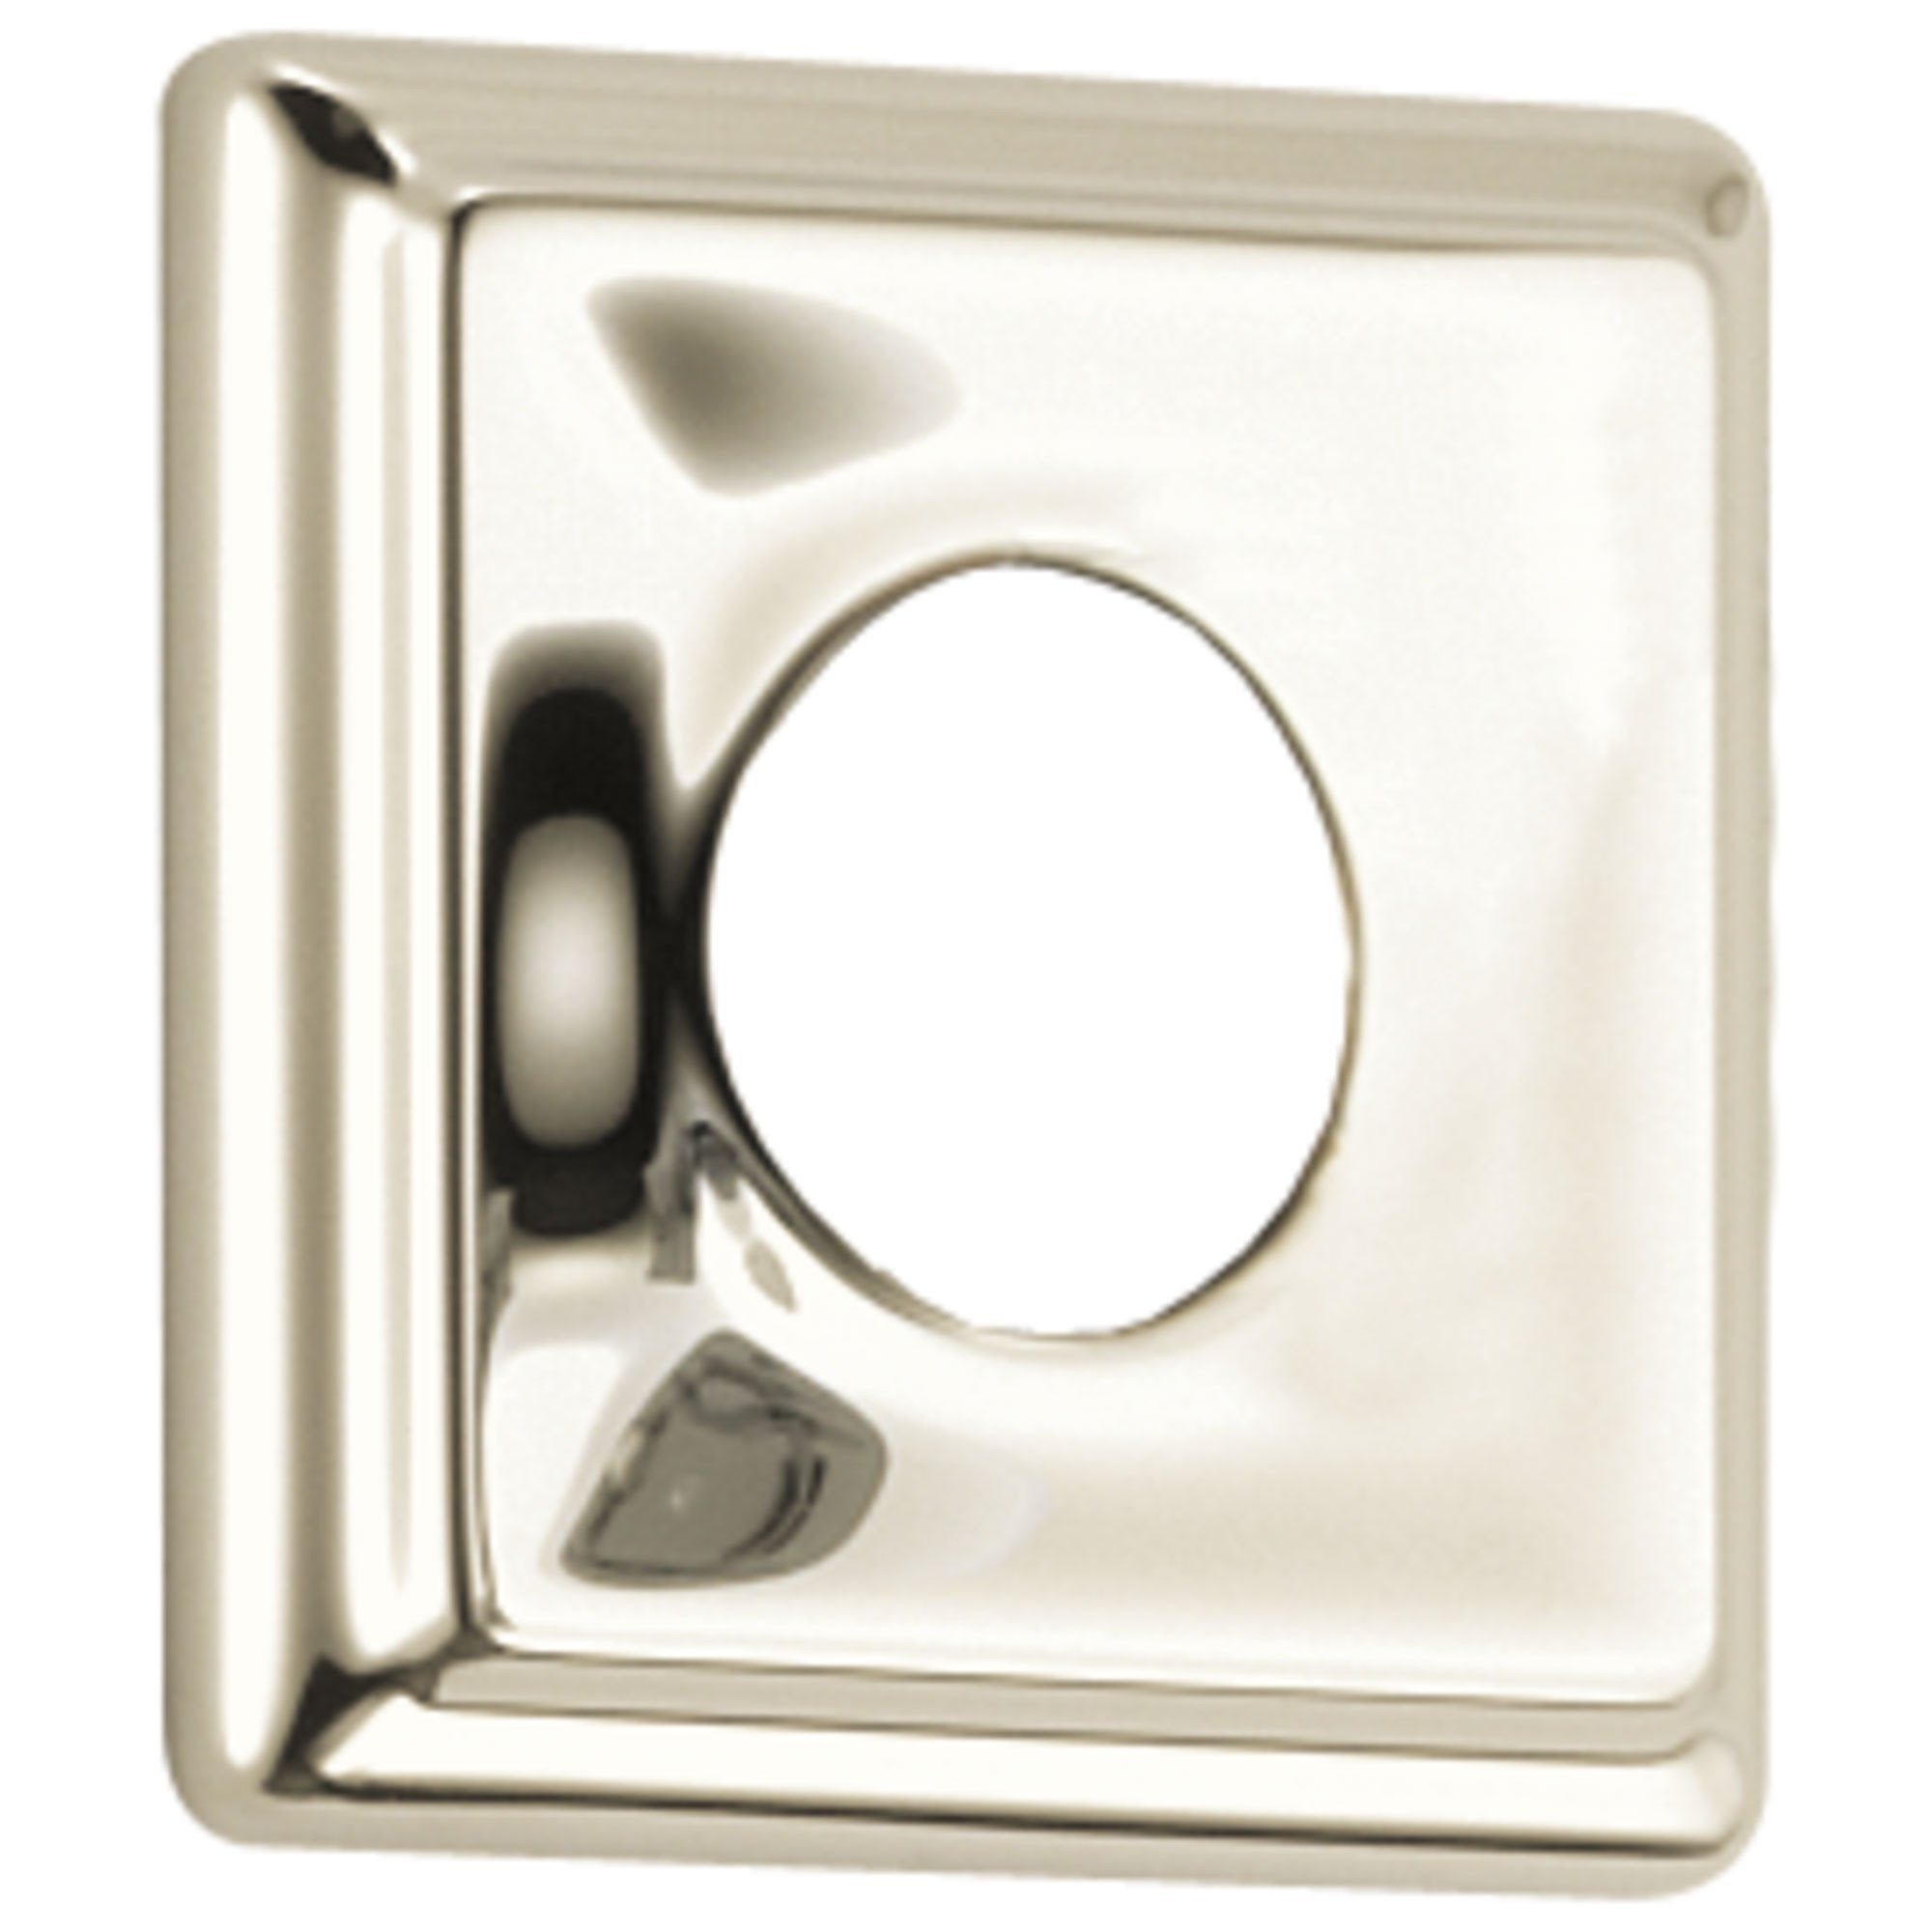 Delta Dryden Collection Polished Nickel Finish Square Standard Shower Flange DRP52144PN